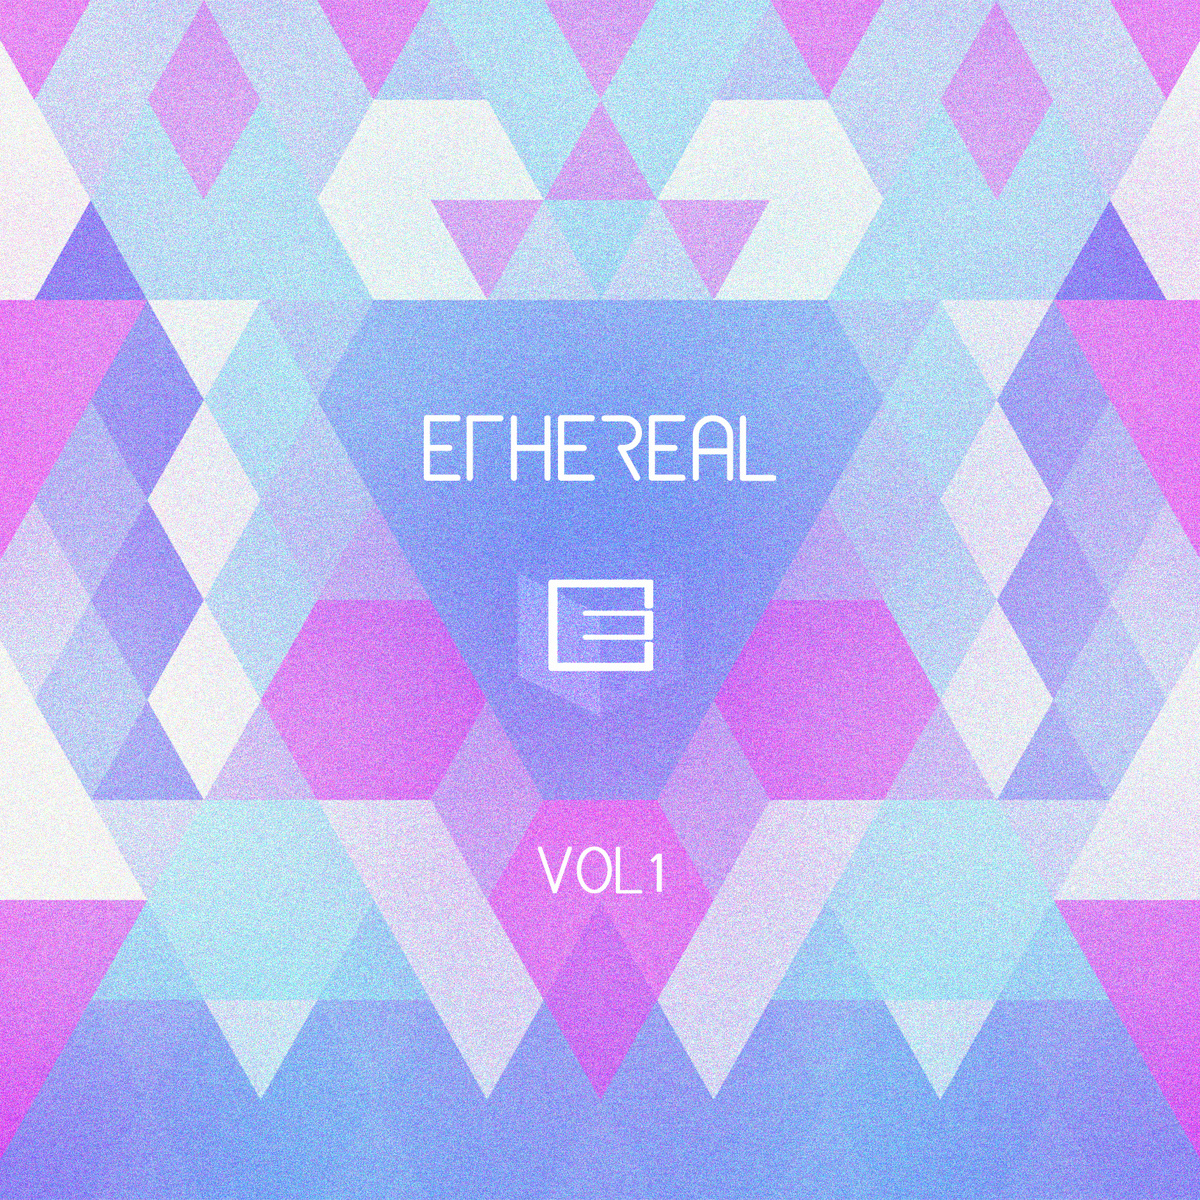 Ethereal_lab_-_ethereal_vol._1